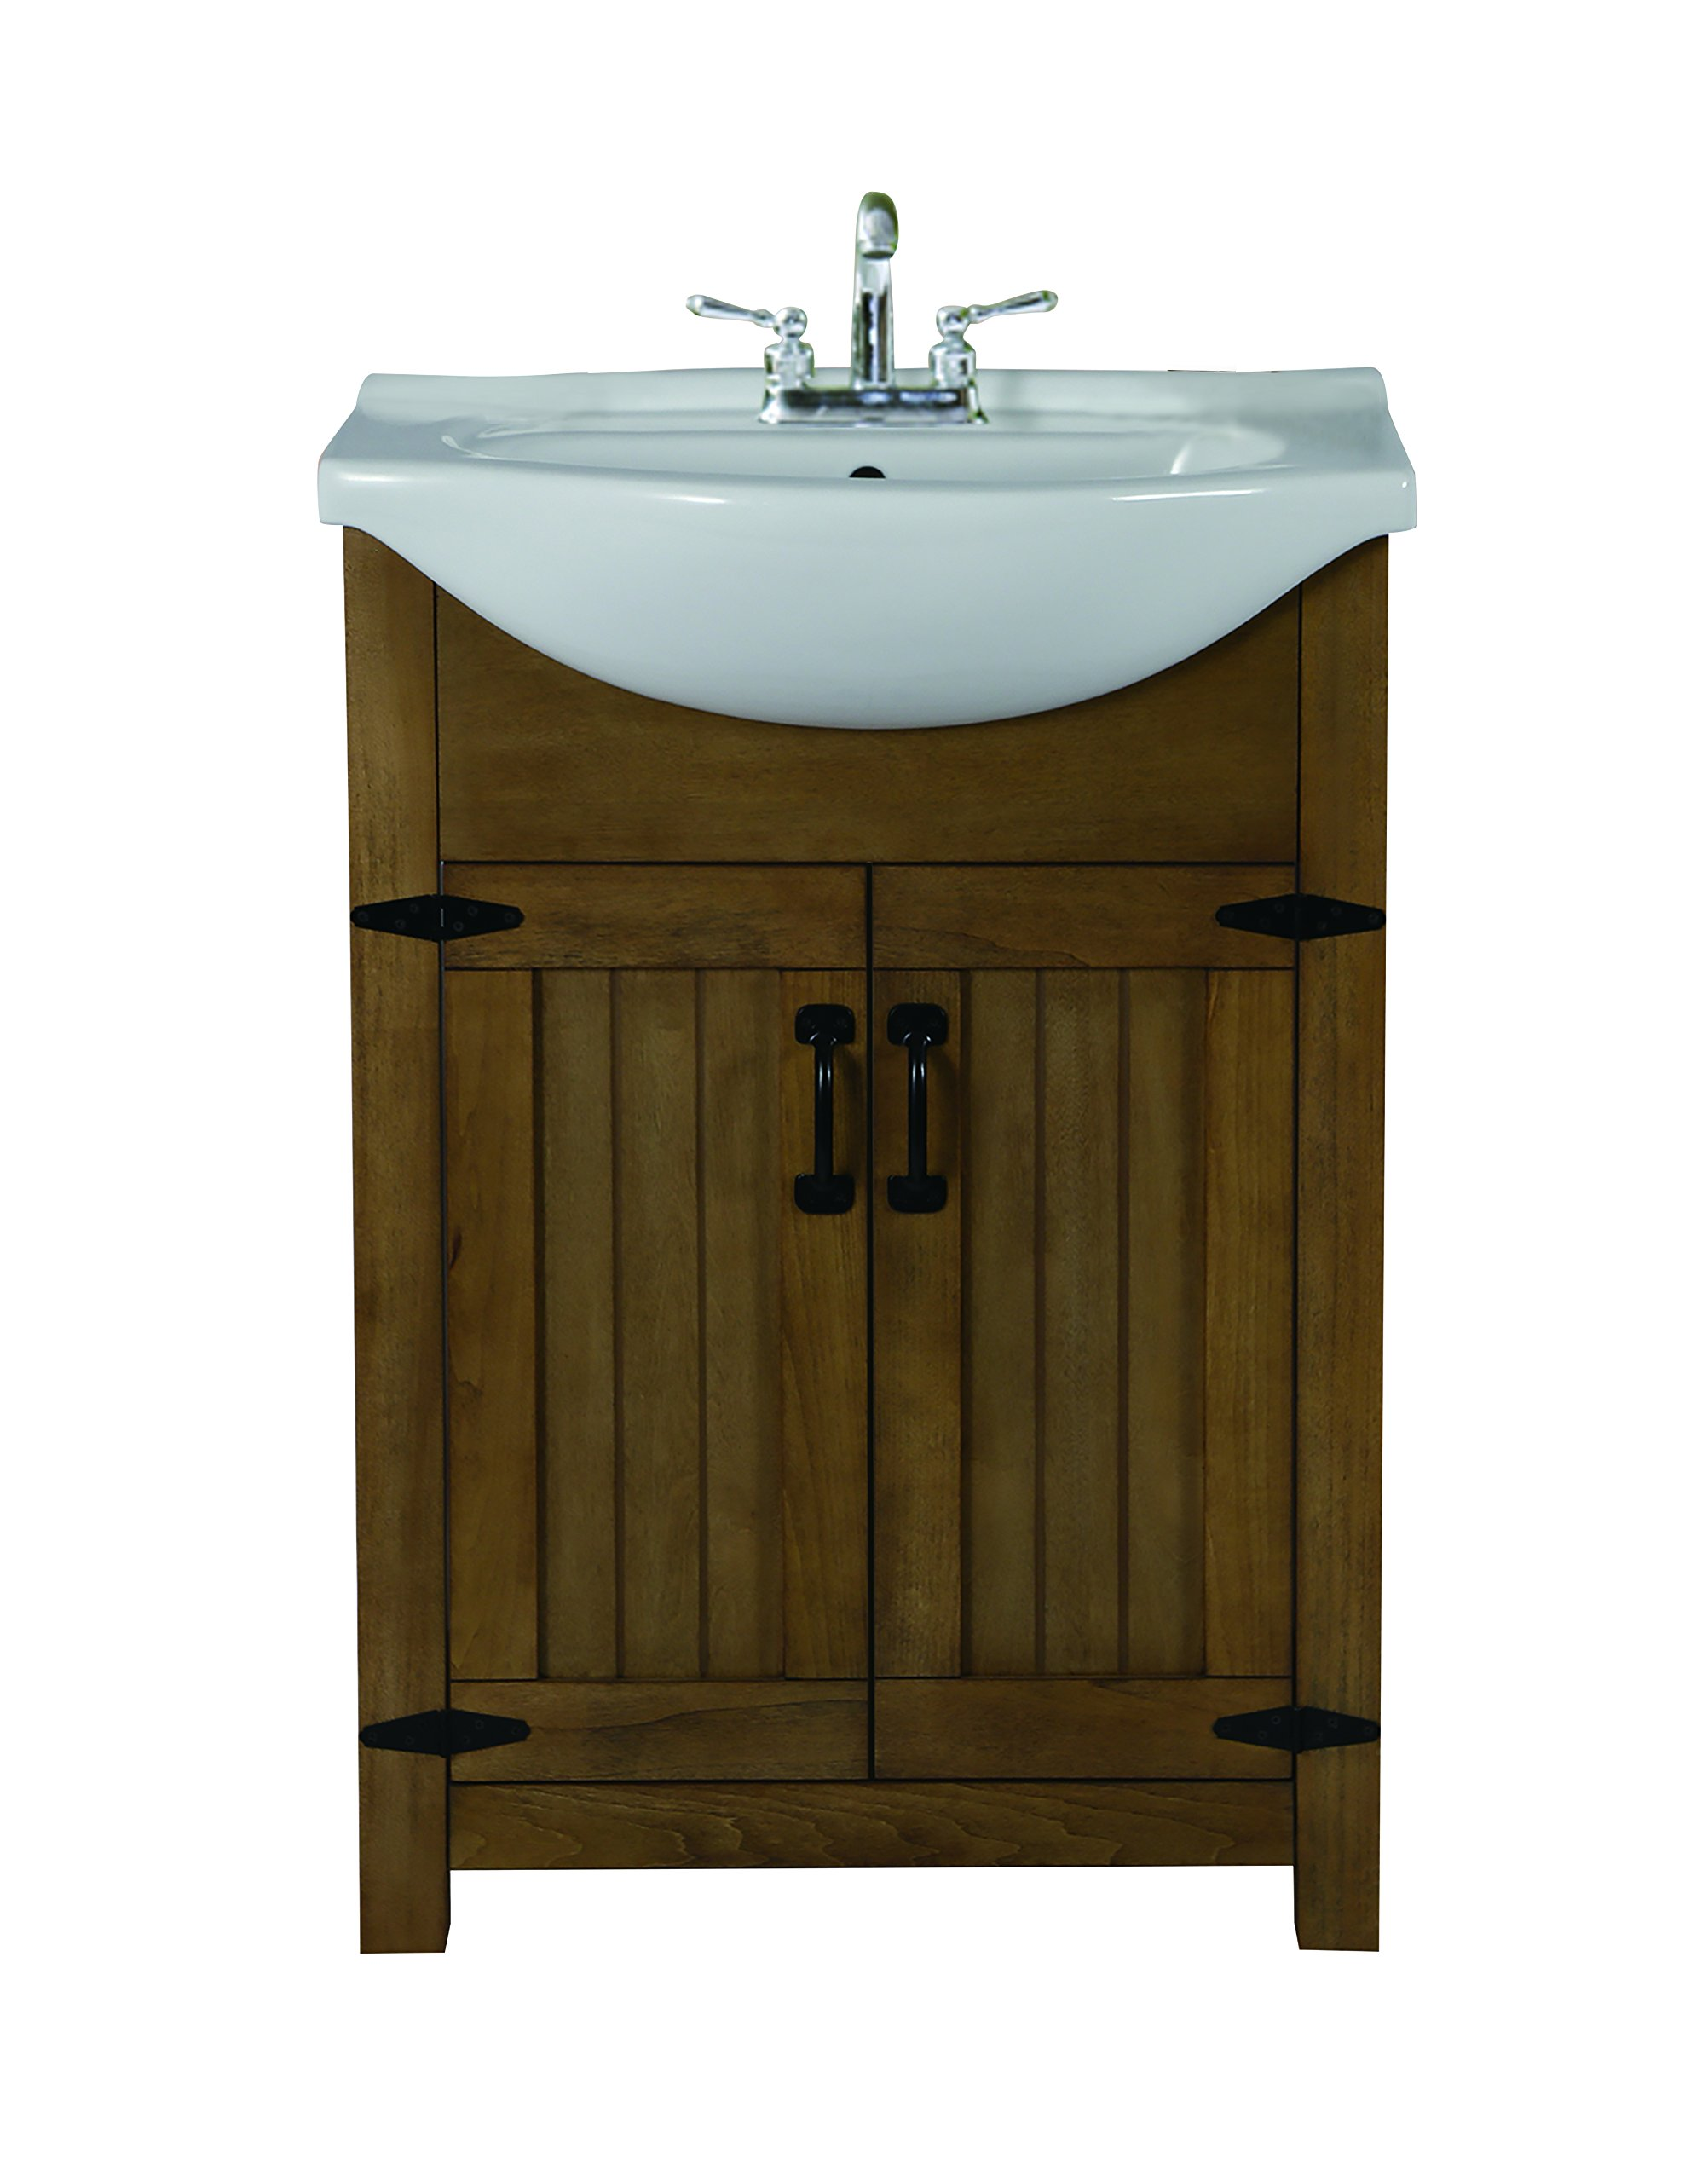 Design House 547505 Austin 24x17 with White Top, Weathered Grey Vanity Combos